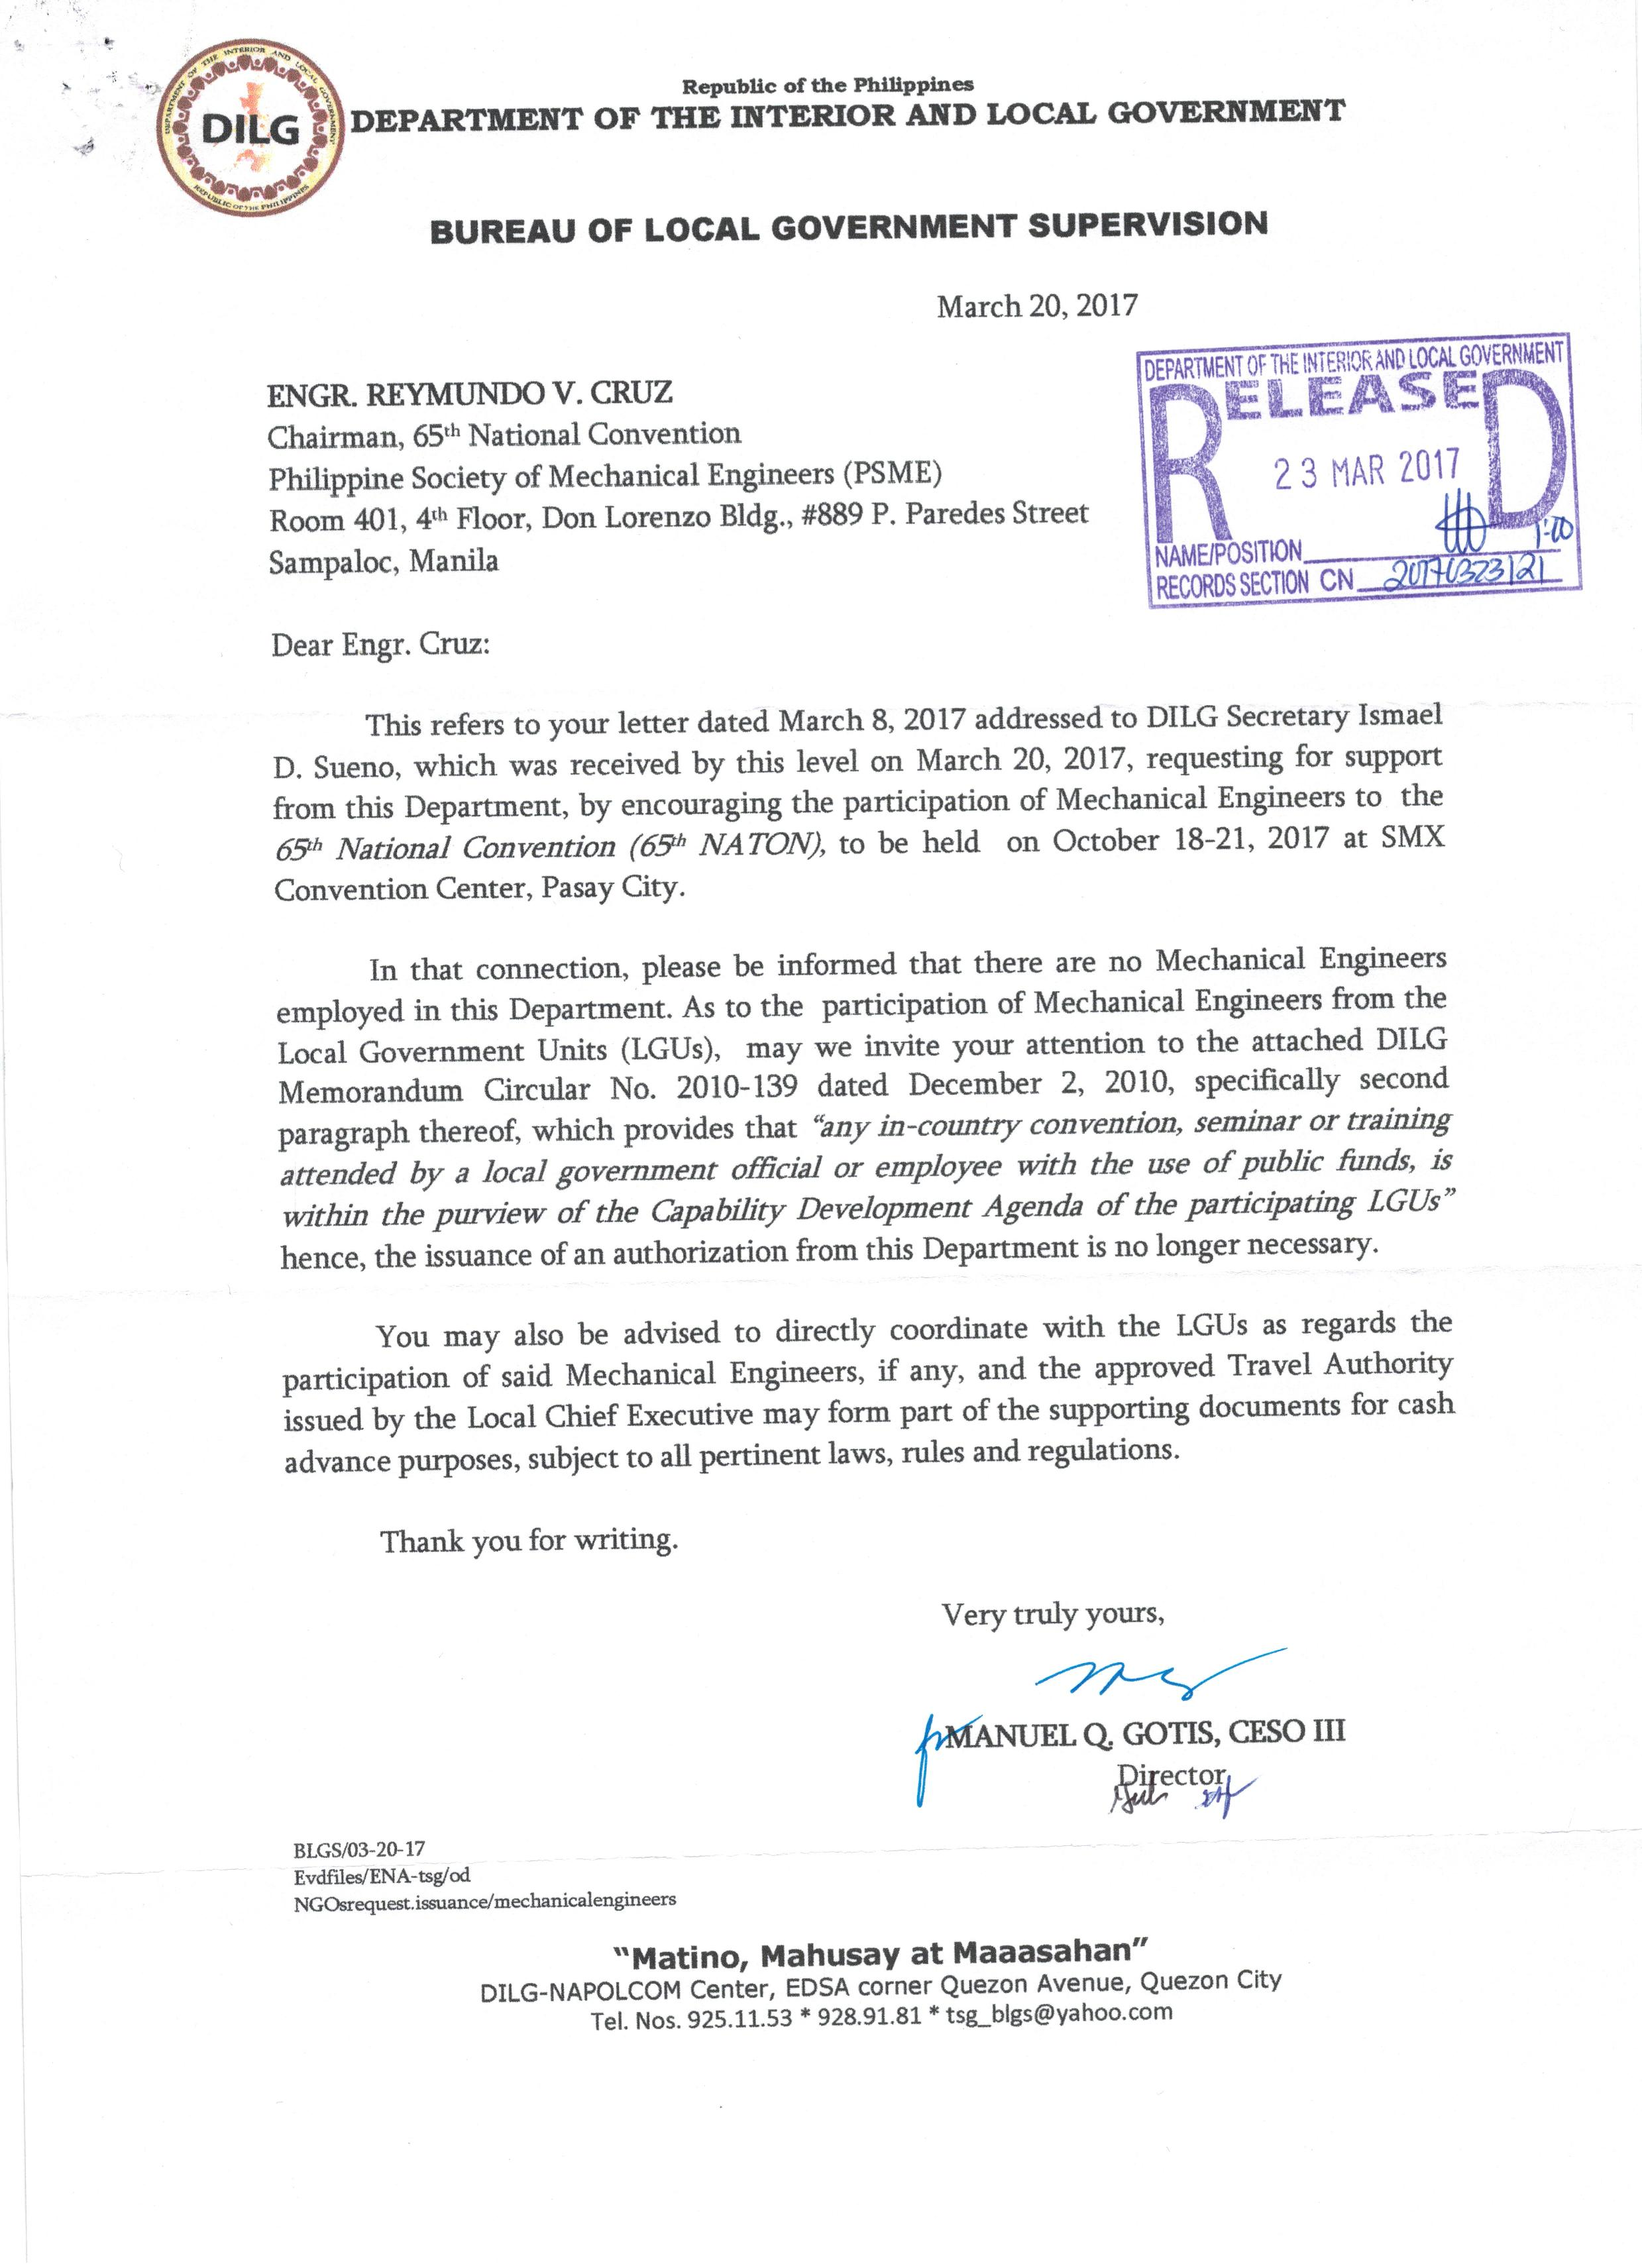 65th psme national convention 2017 philippine society of dilg endorsement letter stopboris Images